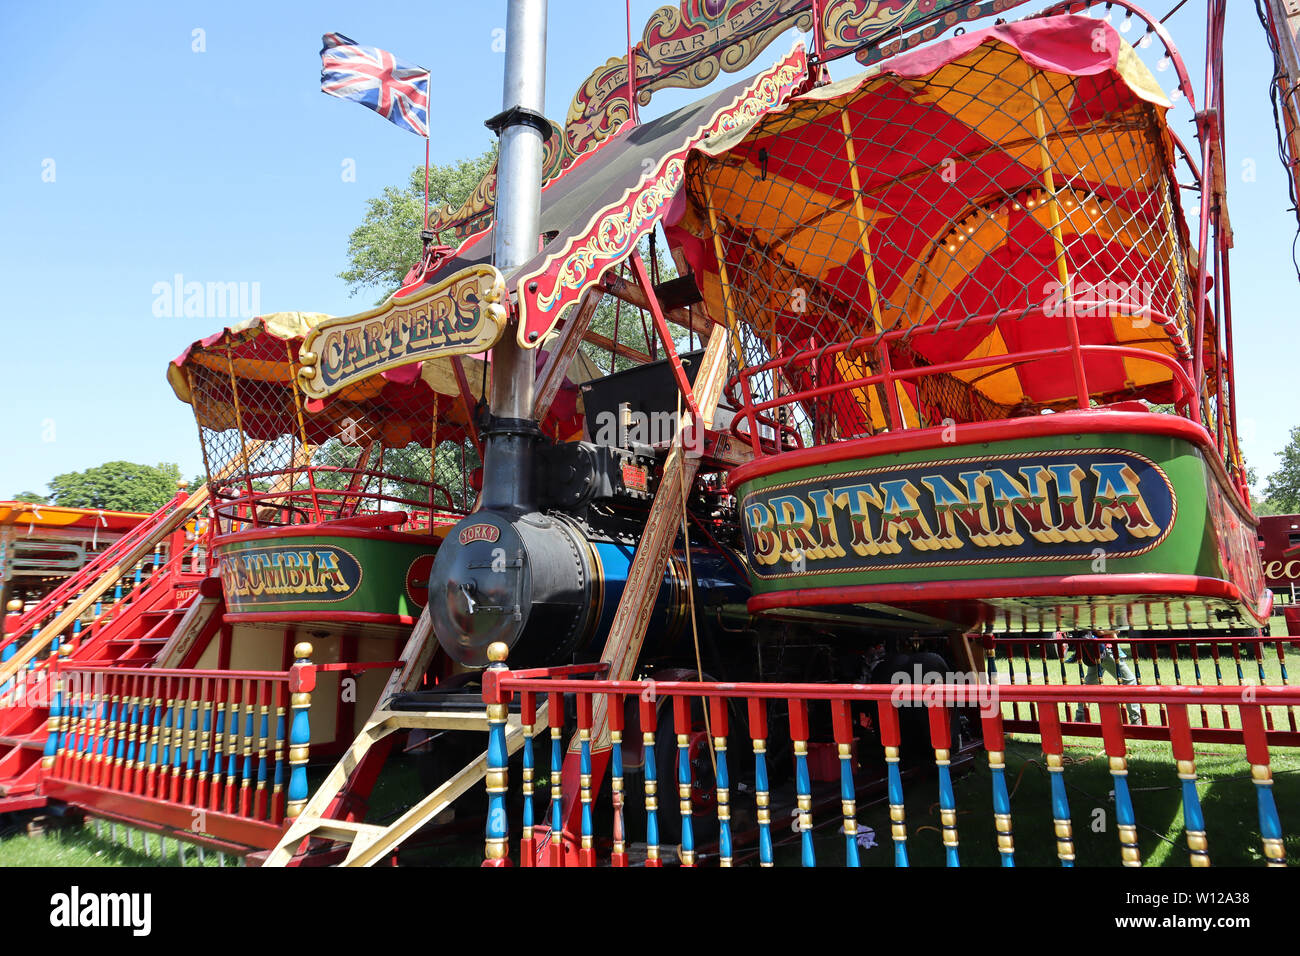 Excelsior Steam Yachts Carters Steam Fair Peckham Rye Common